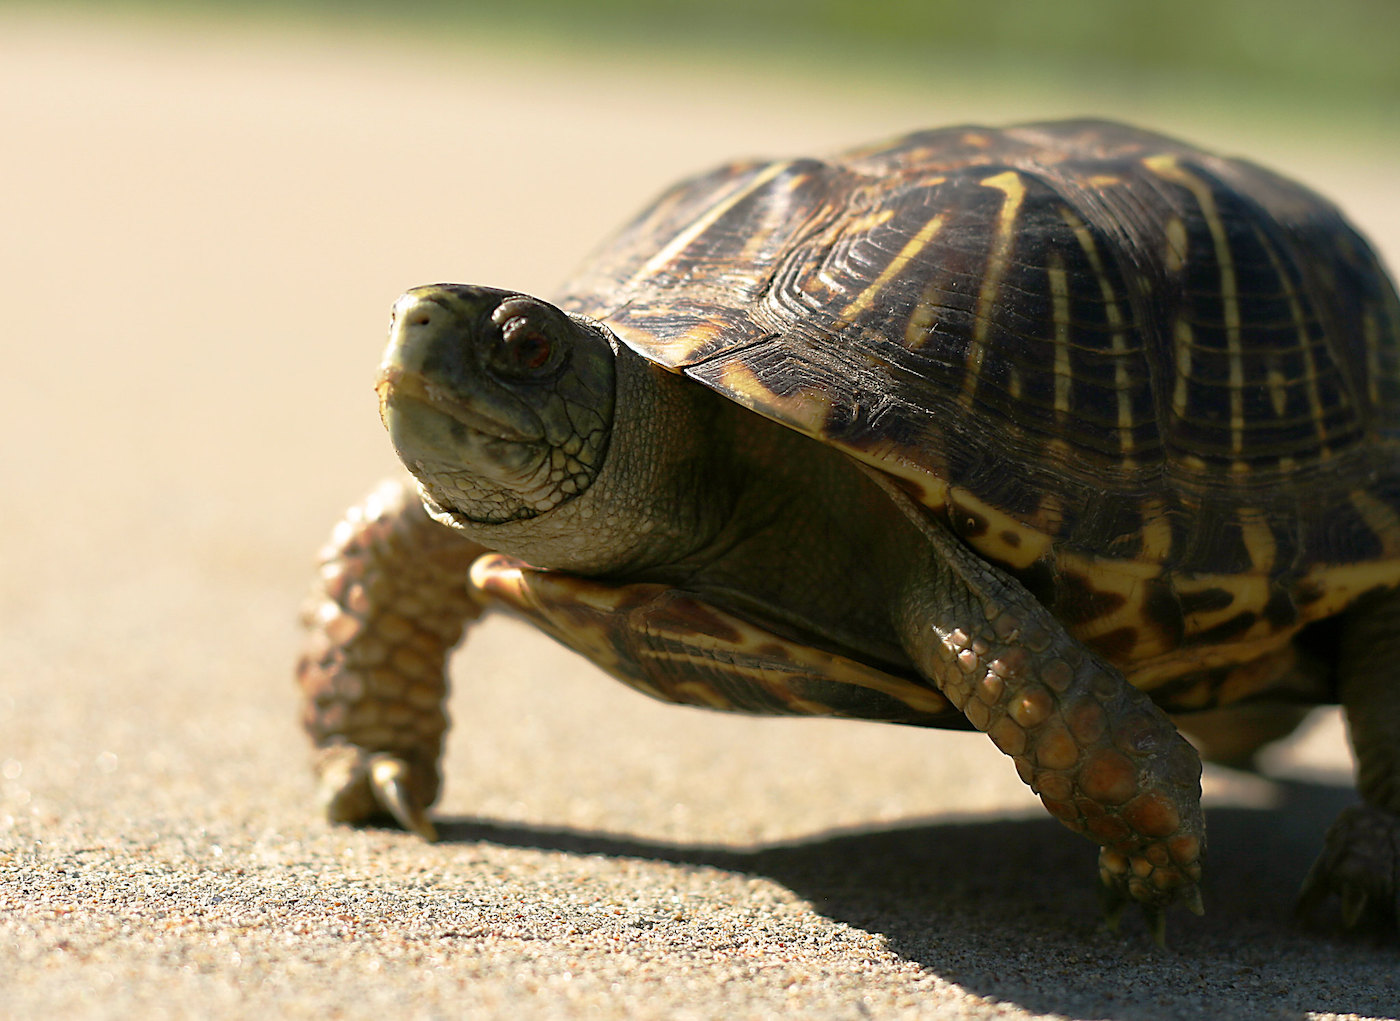 A car passenger is struck in the head by a flying turtle (in Florida, of course)